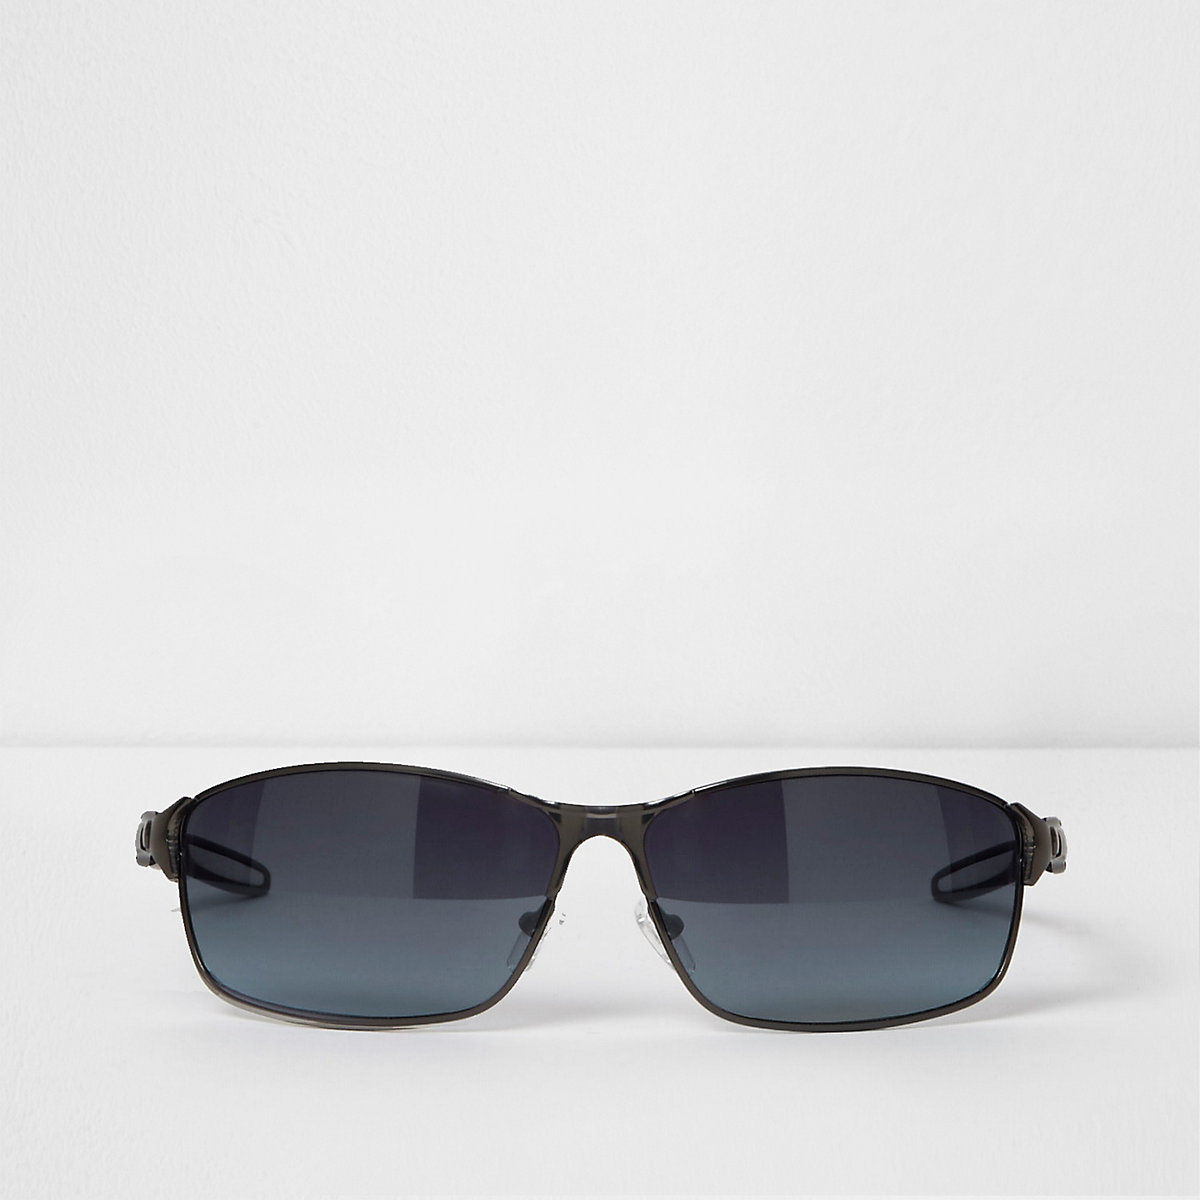 Grey gunmetal wraparound sunglasses